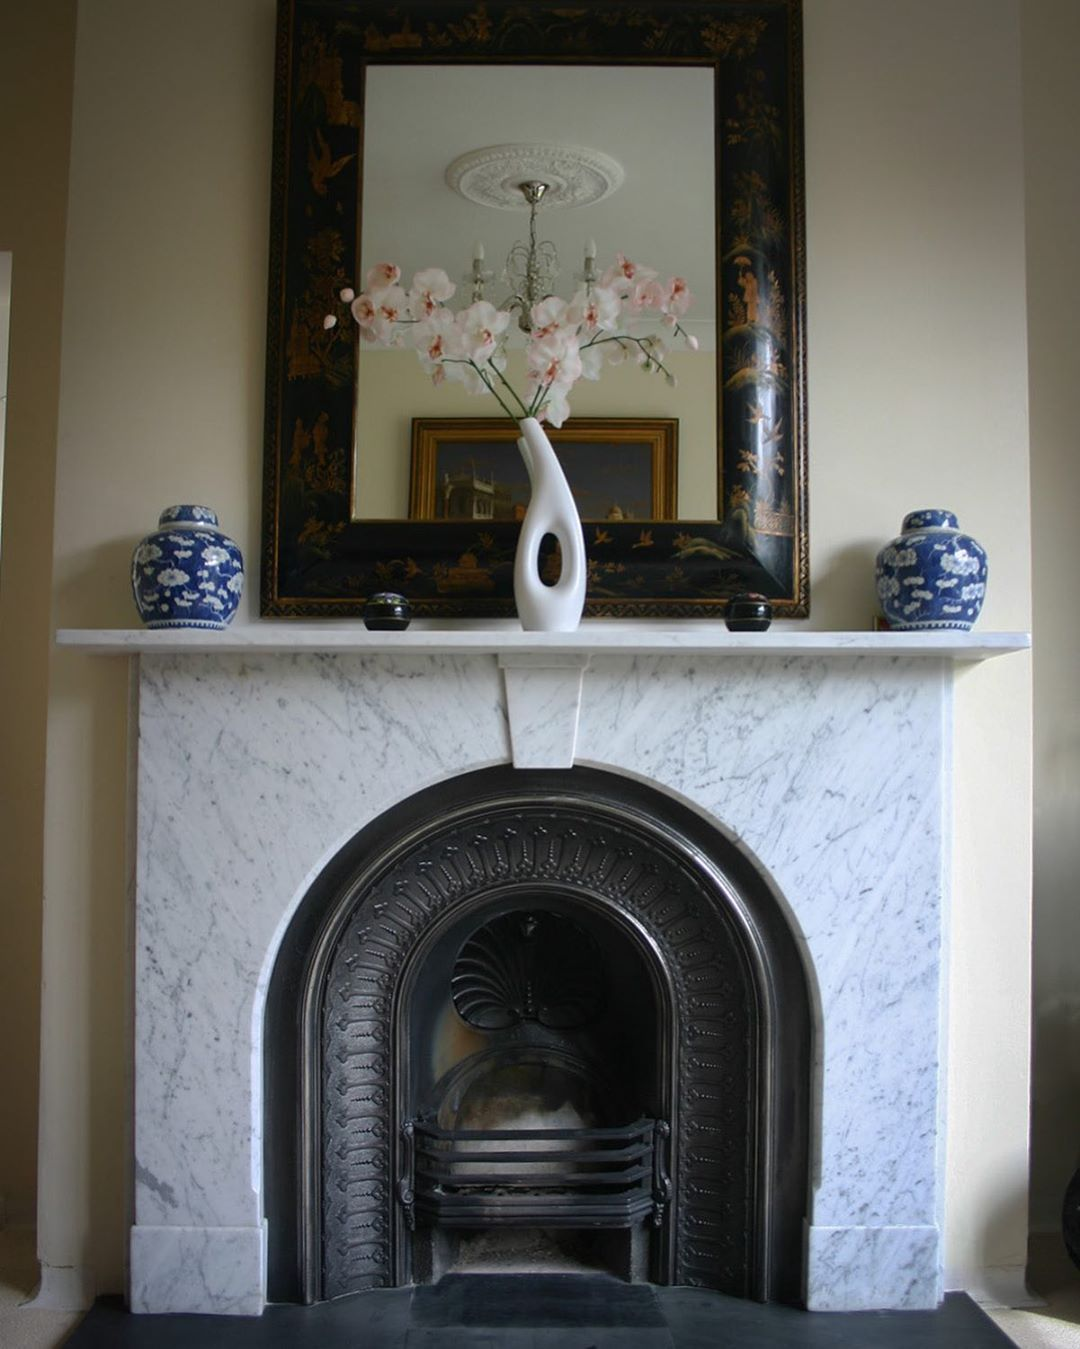 Nostalgia Antique Fireplaces On Instagram Another Beautiful